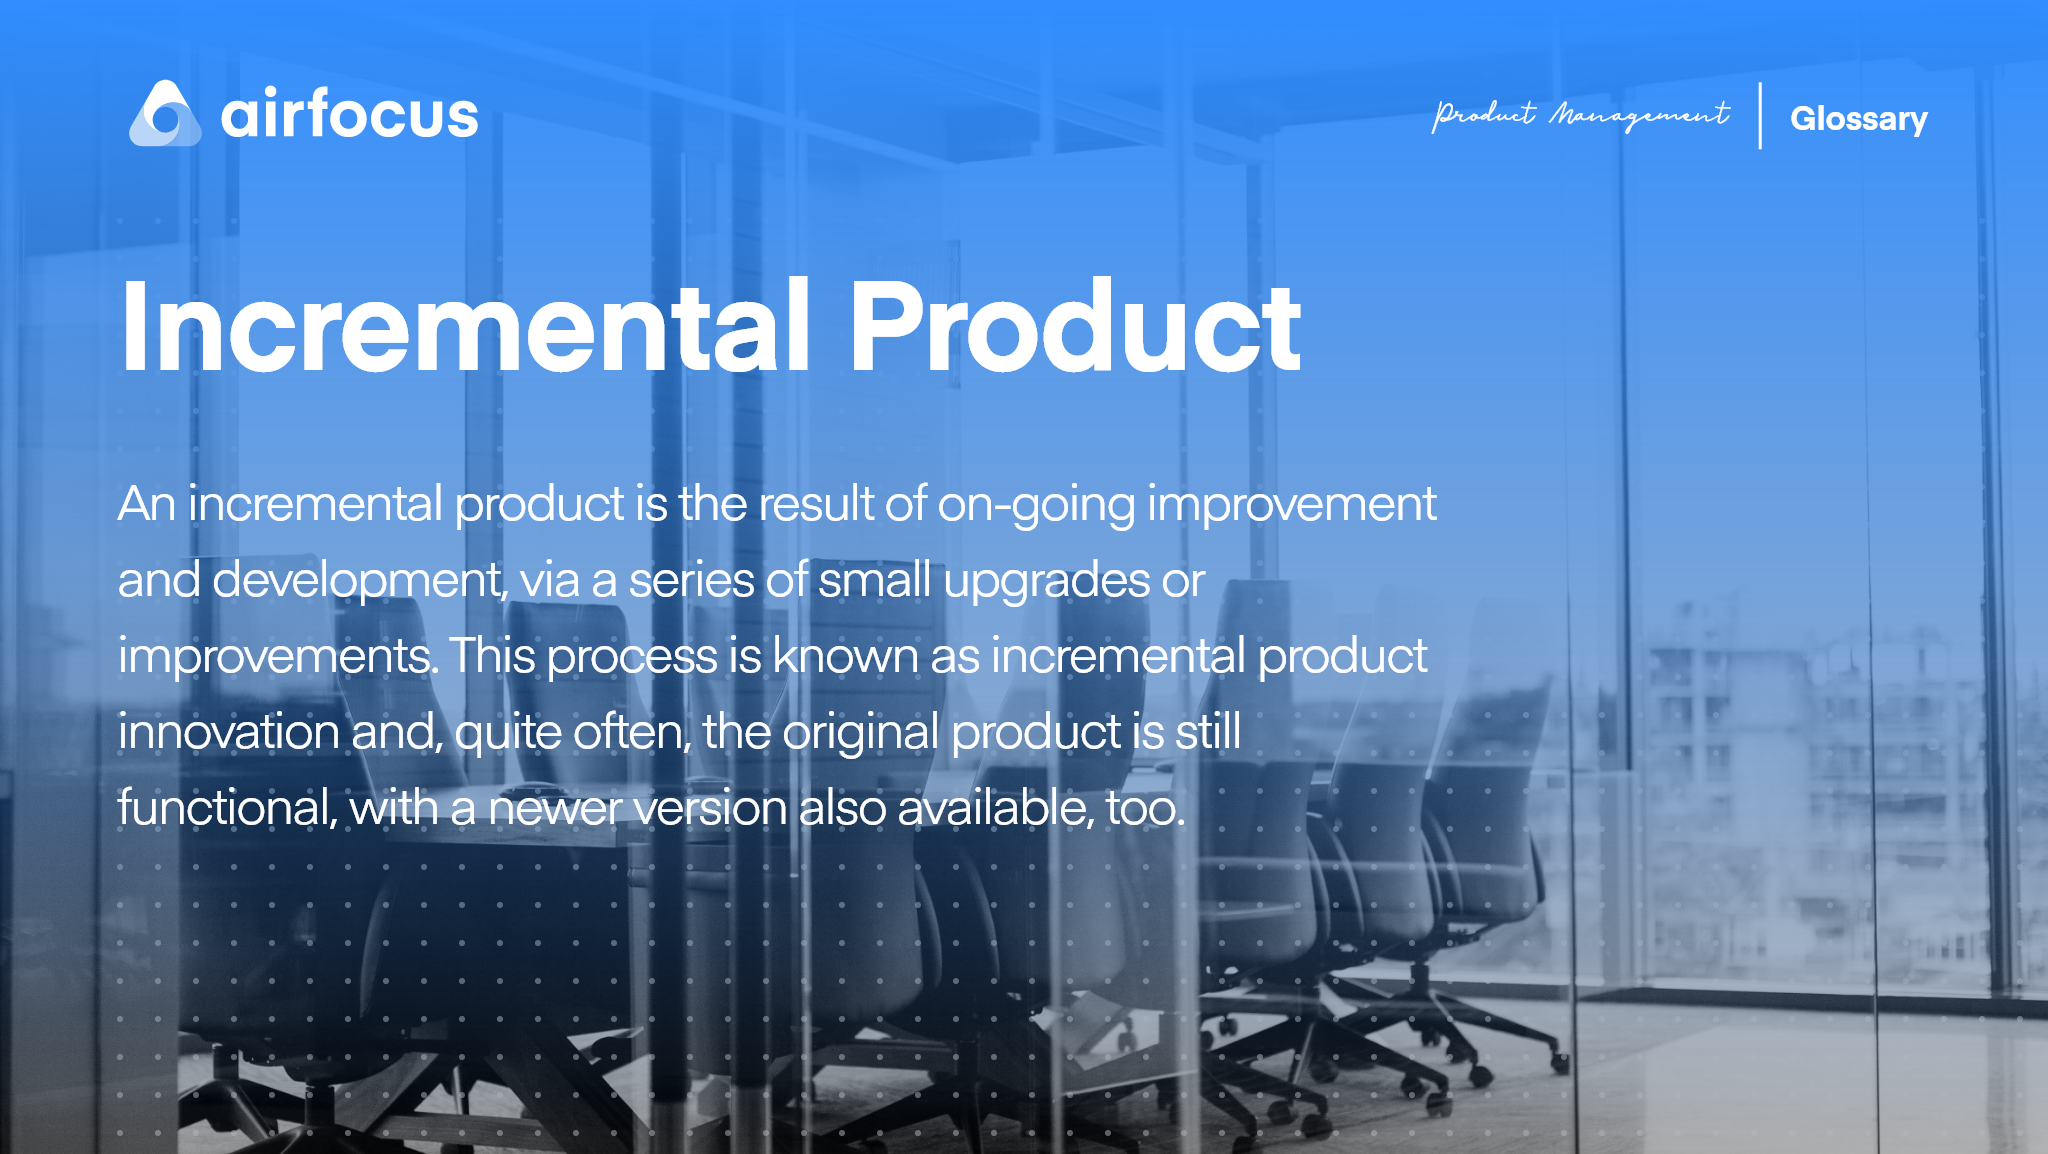 What Is An Incremental Product?